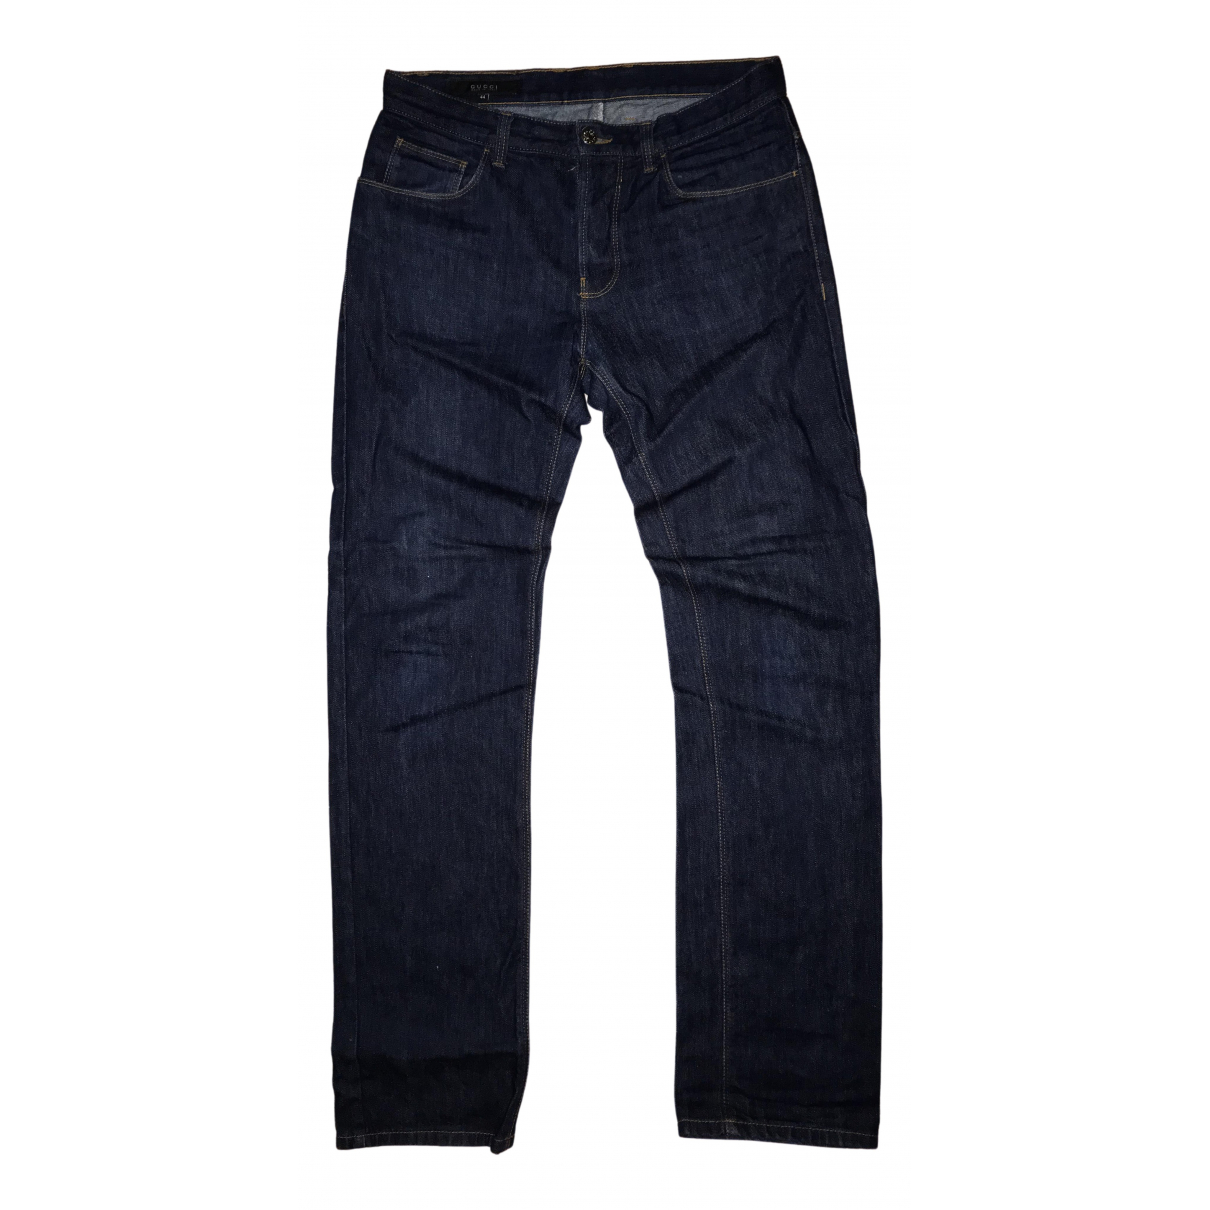 Gucci \N Blue Denim - Jeans Trousers for Men S International